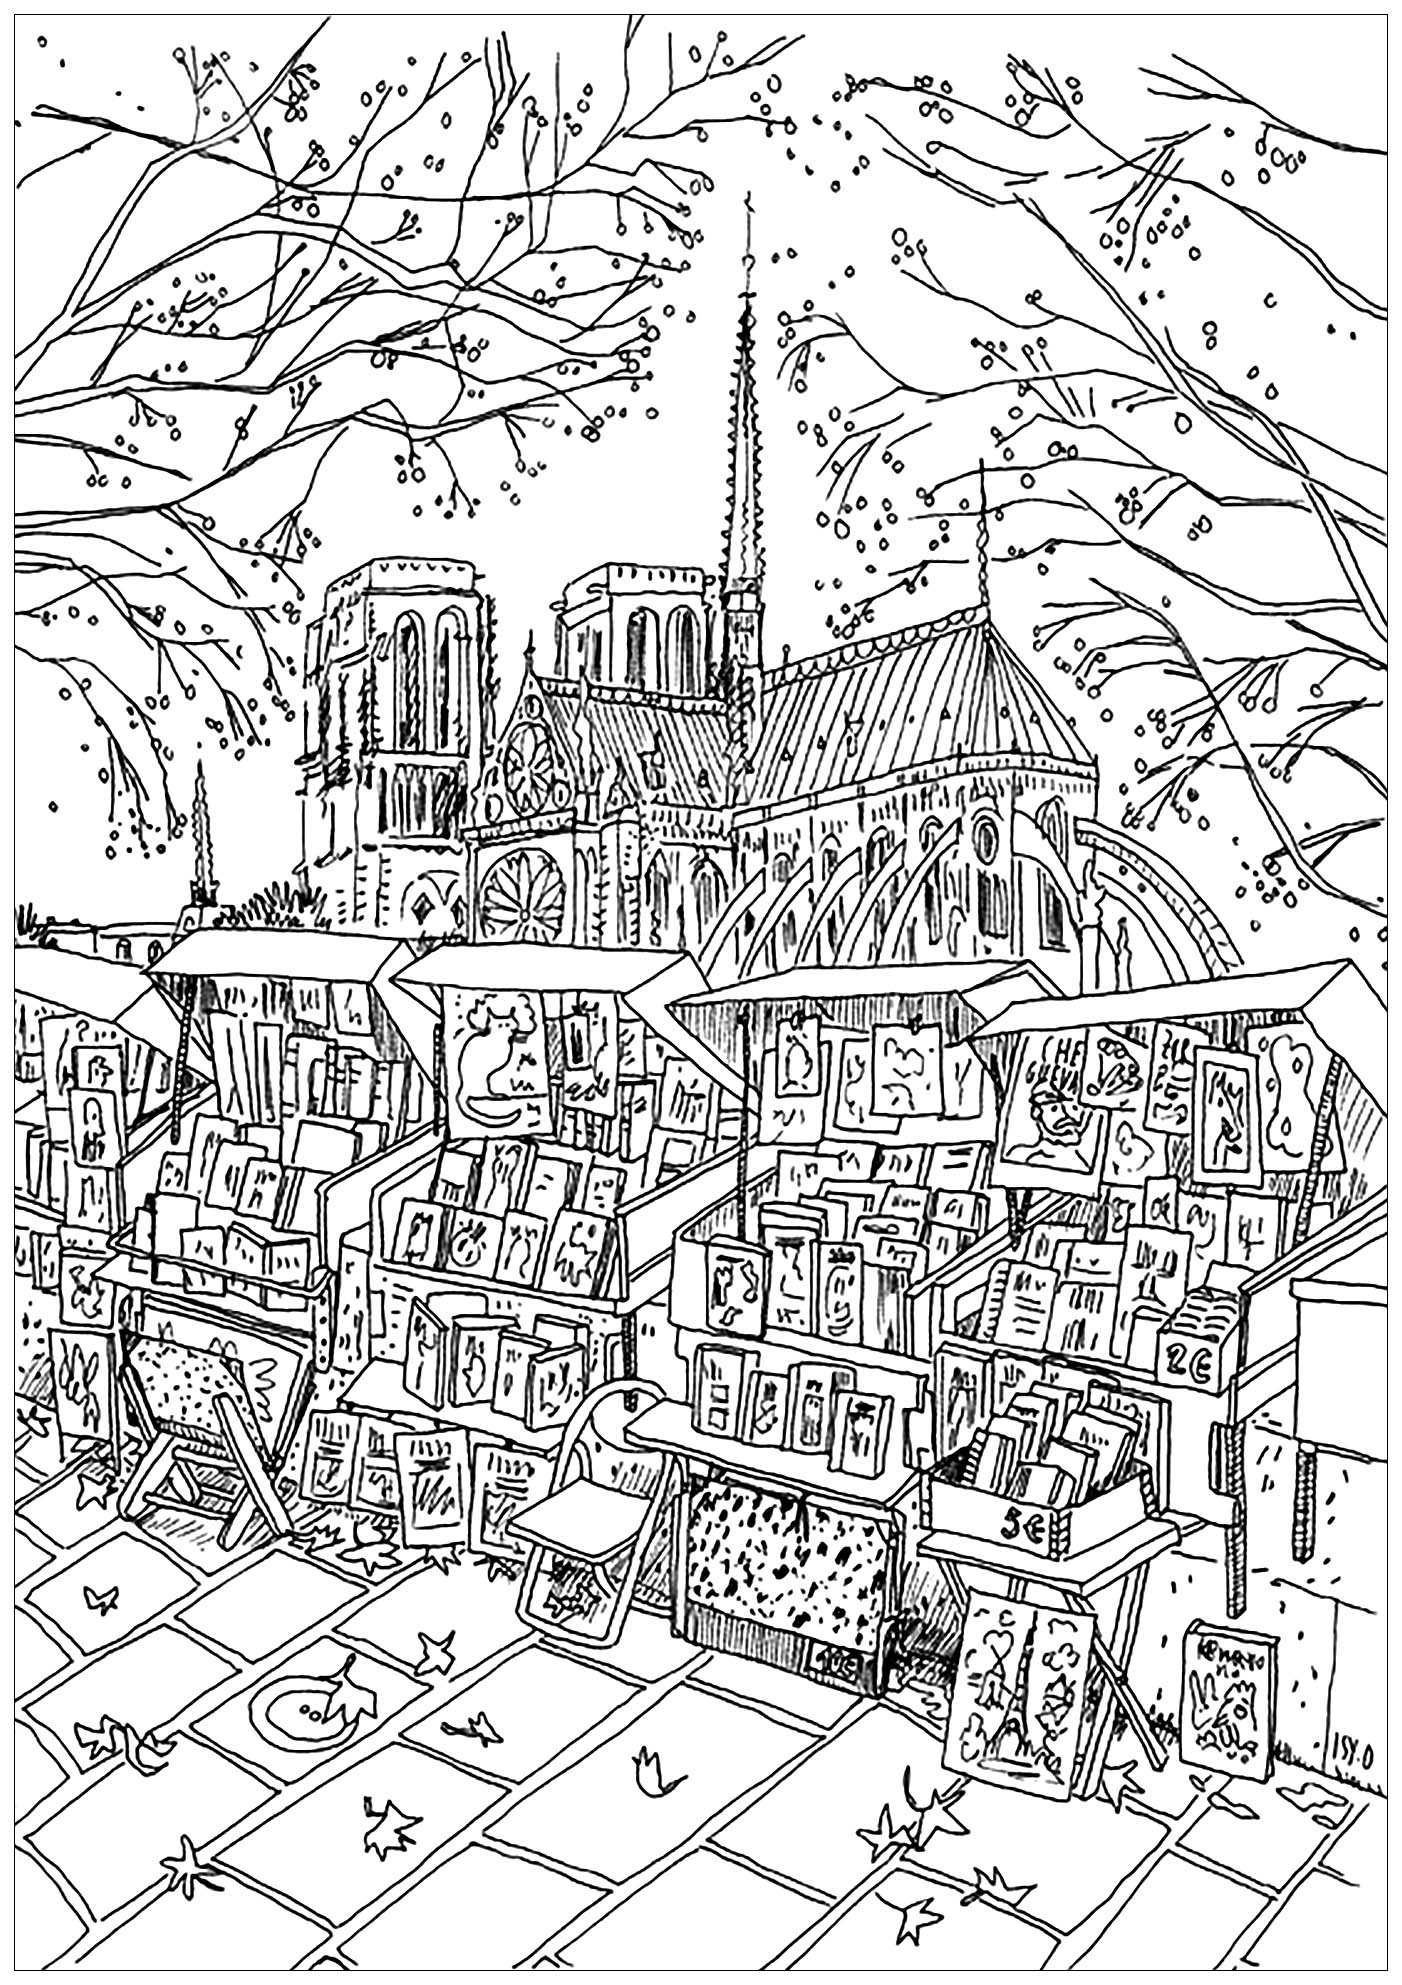 Notre Dame de Paris drawing, with little bookstore in foreground